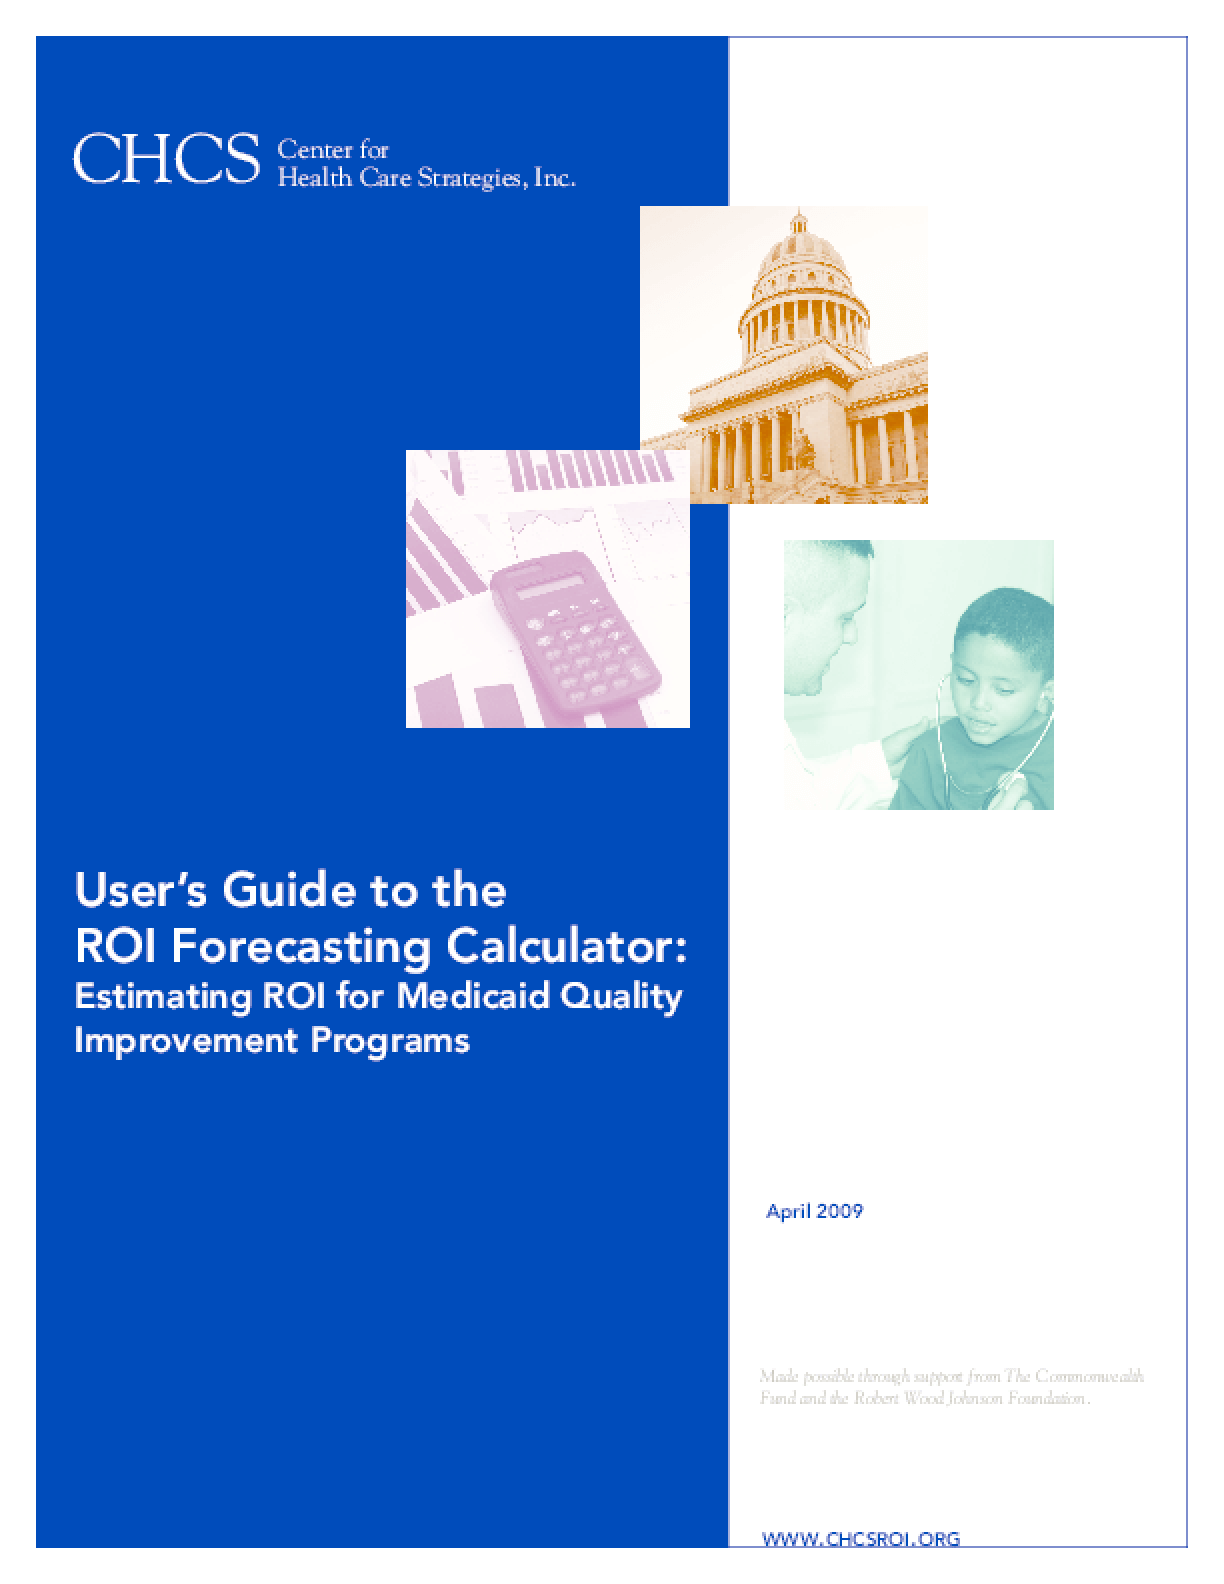 User's Guide to the ROI Forecasting Calculator: Estimating ROI for Medicaid Quality Improvement Programs